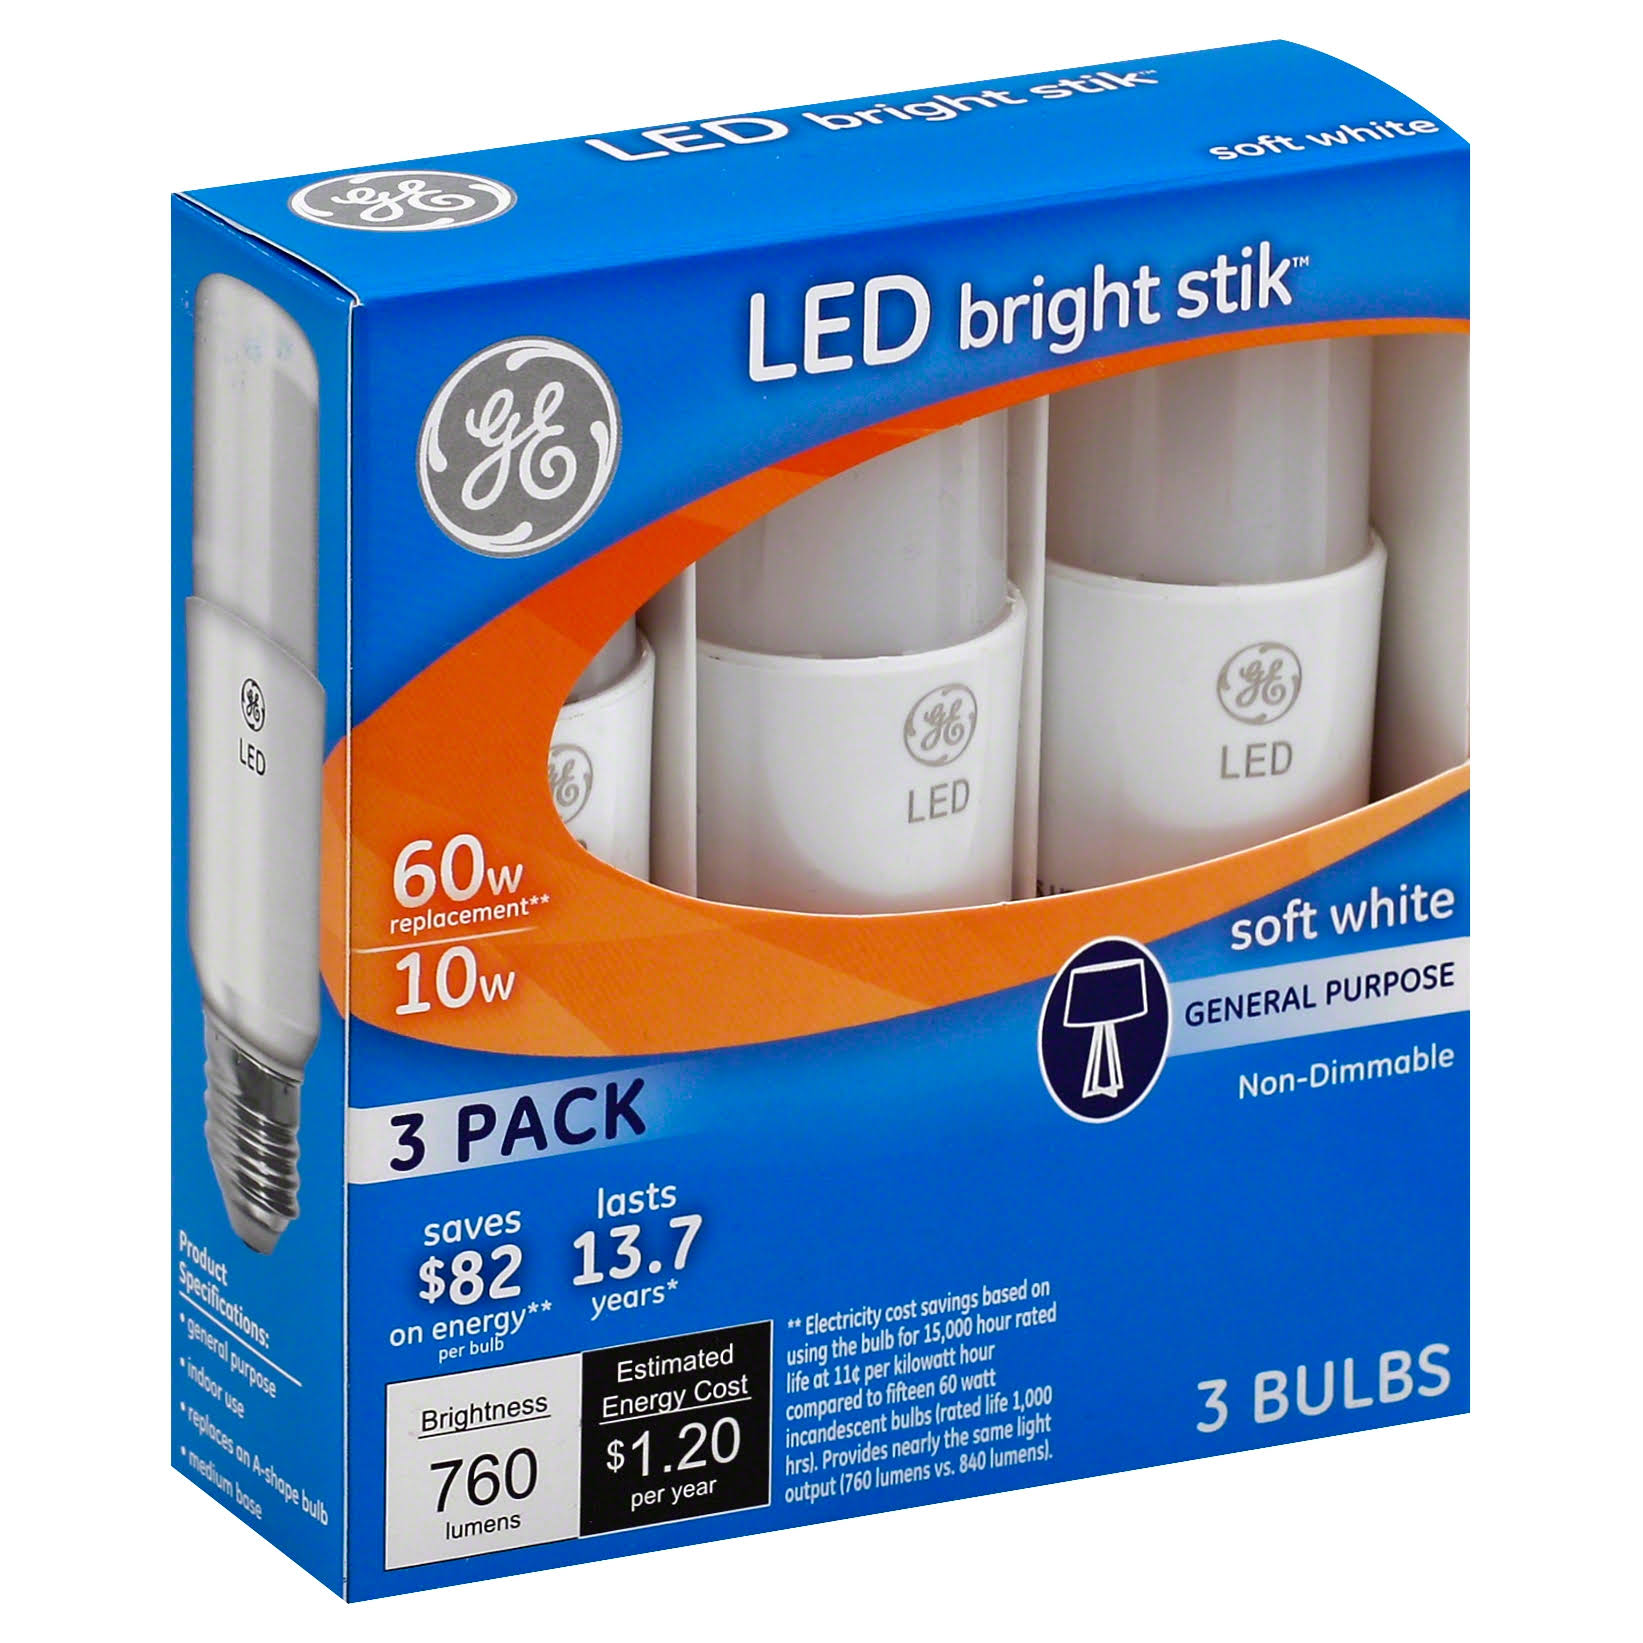 Ge Led Bright Stik - 3 Pack, 10W, Soft White